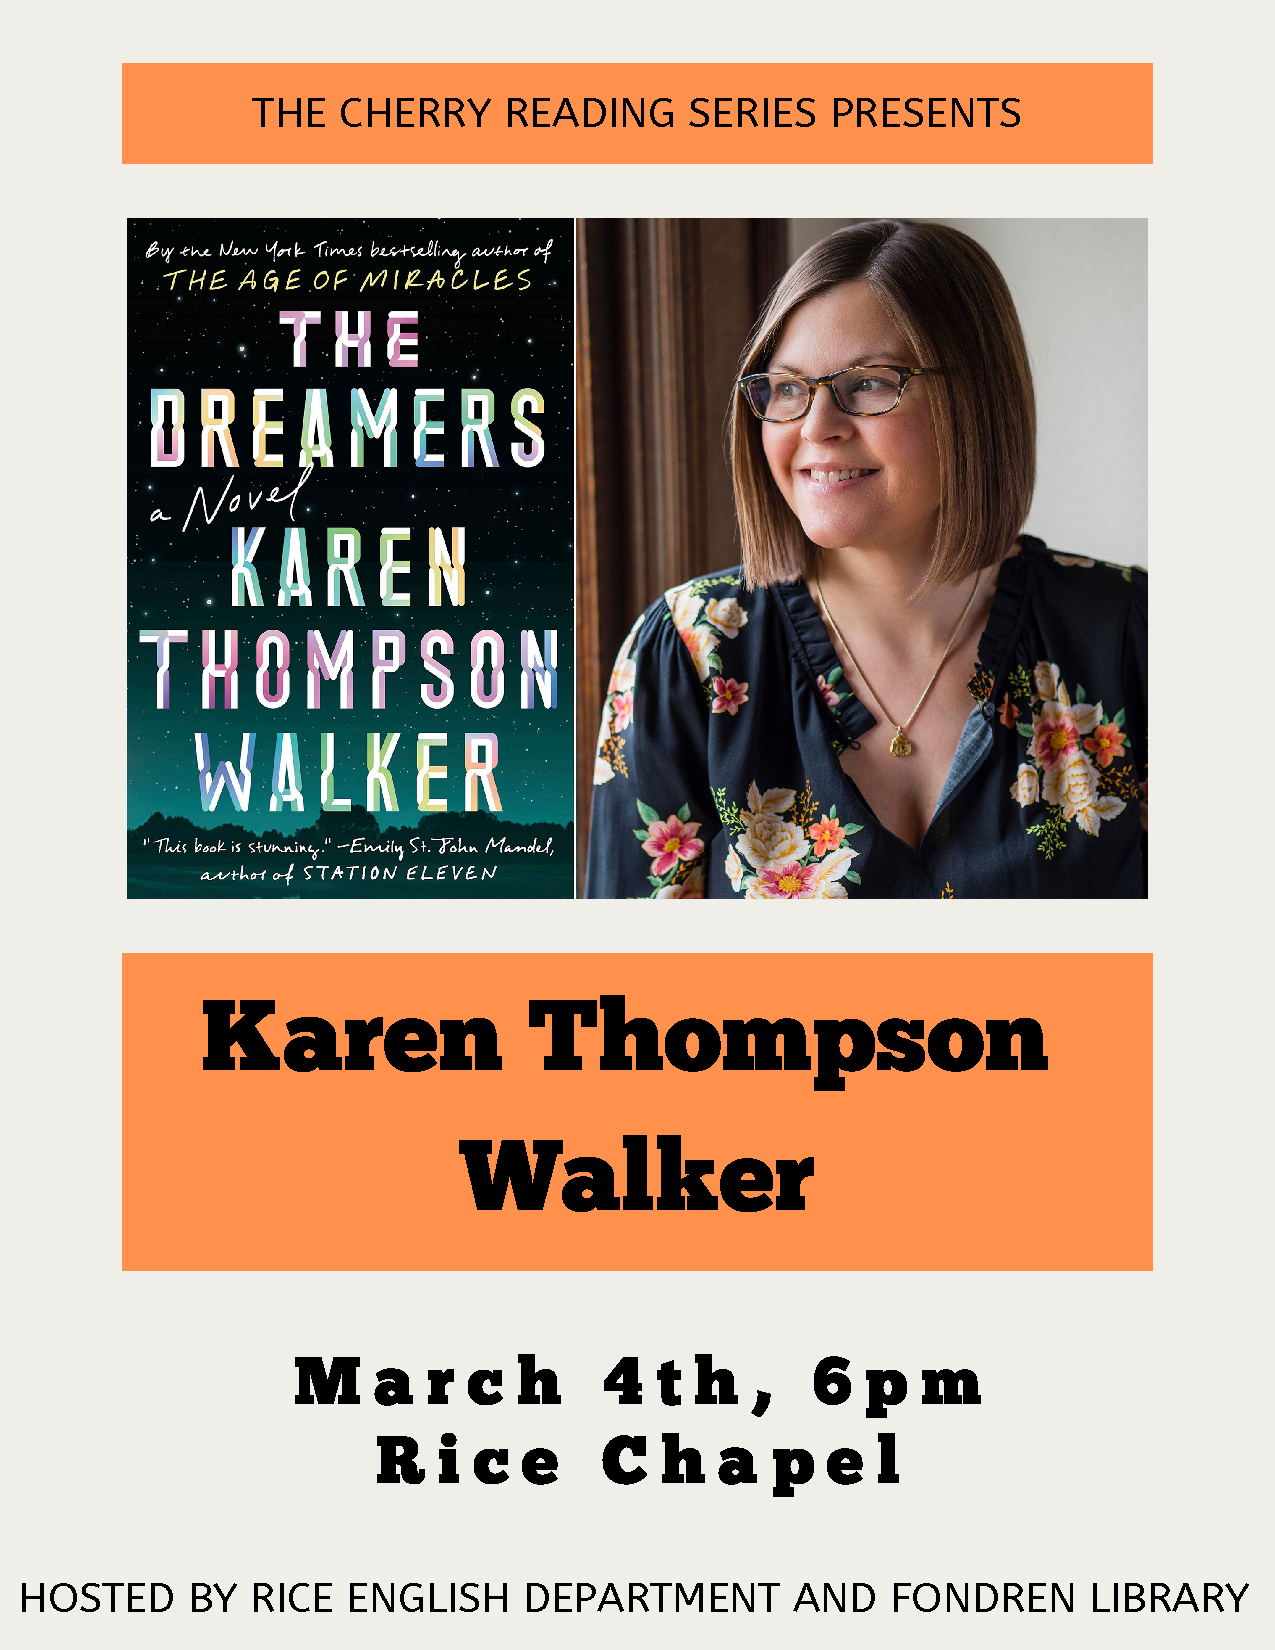 Cherry Reading Series - Karen Thompson Walker, Mar. 4